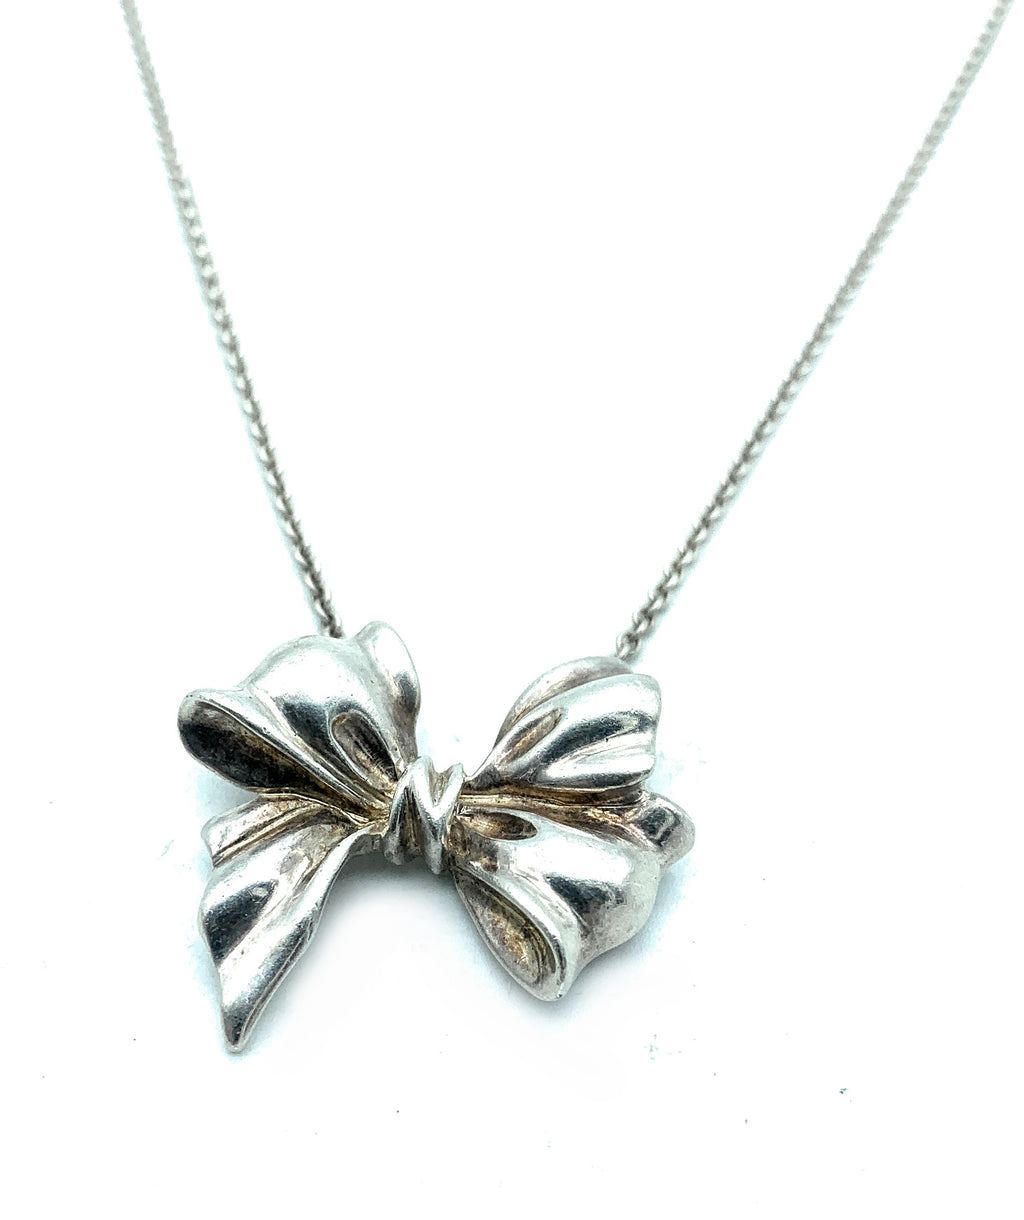 Vintage! Tiffany & Co. Sterling Silver Large Bow Pendant Necklace